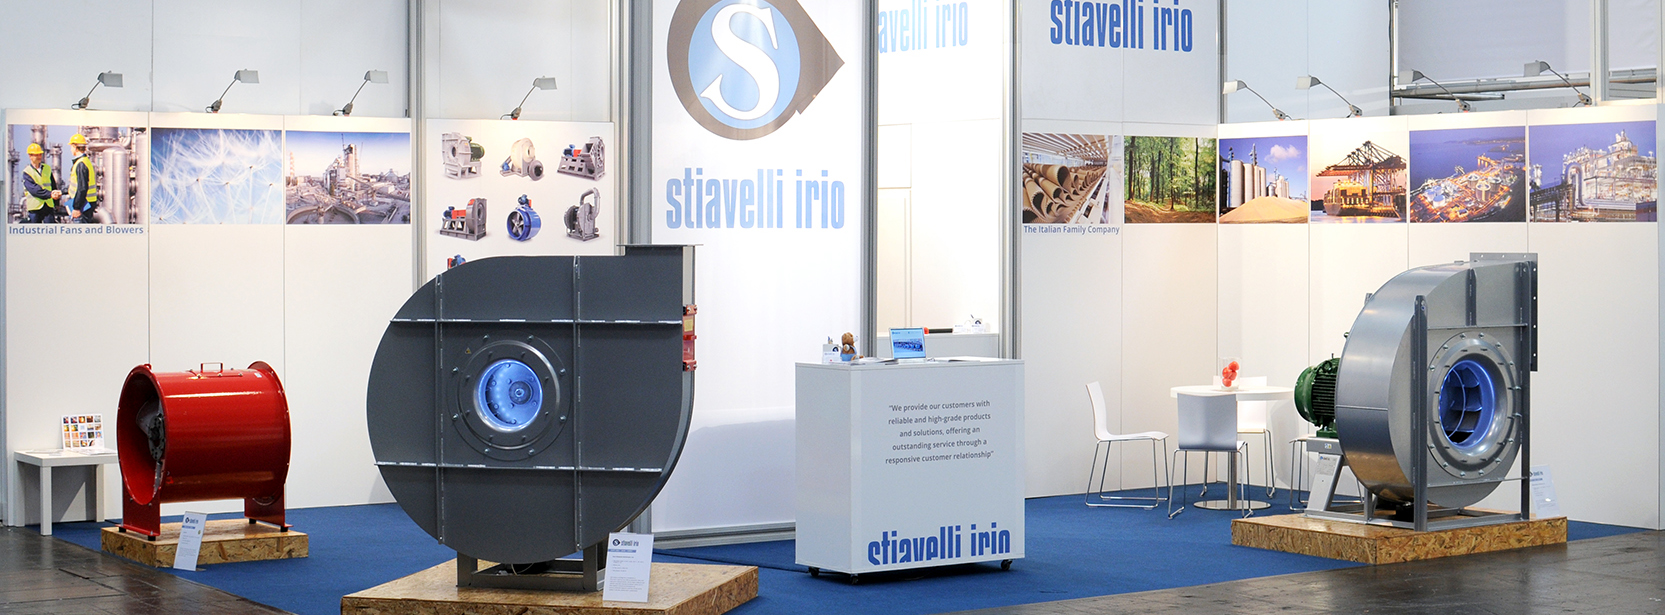 Stiavelli Irio at Hannover Messe 2017 Header